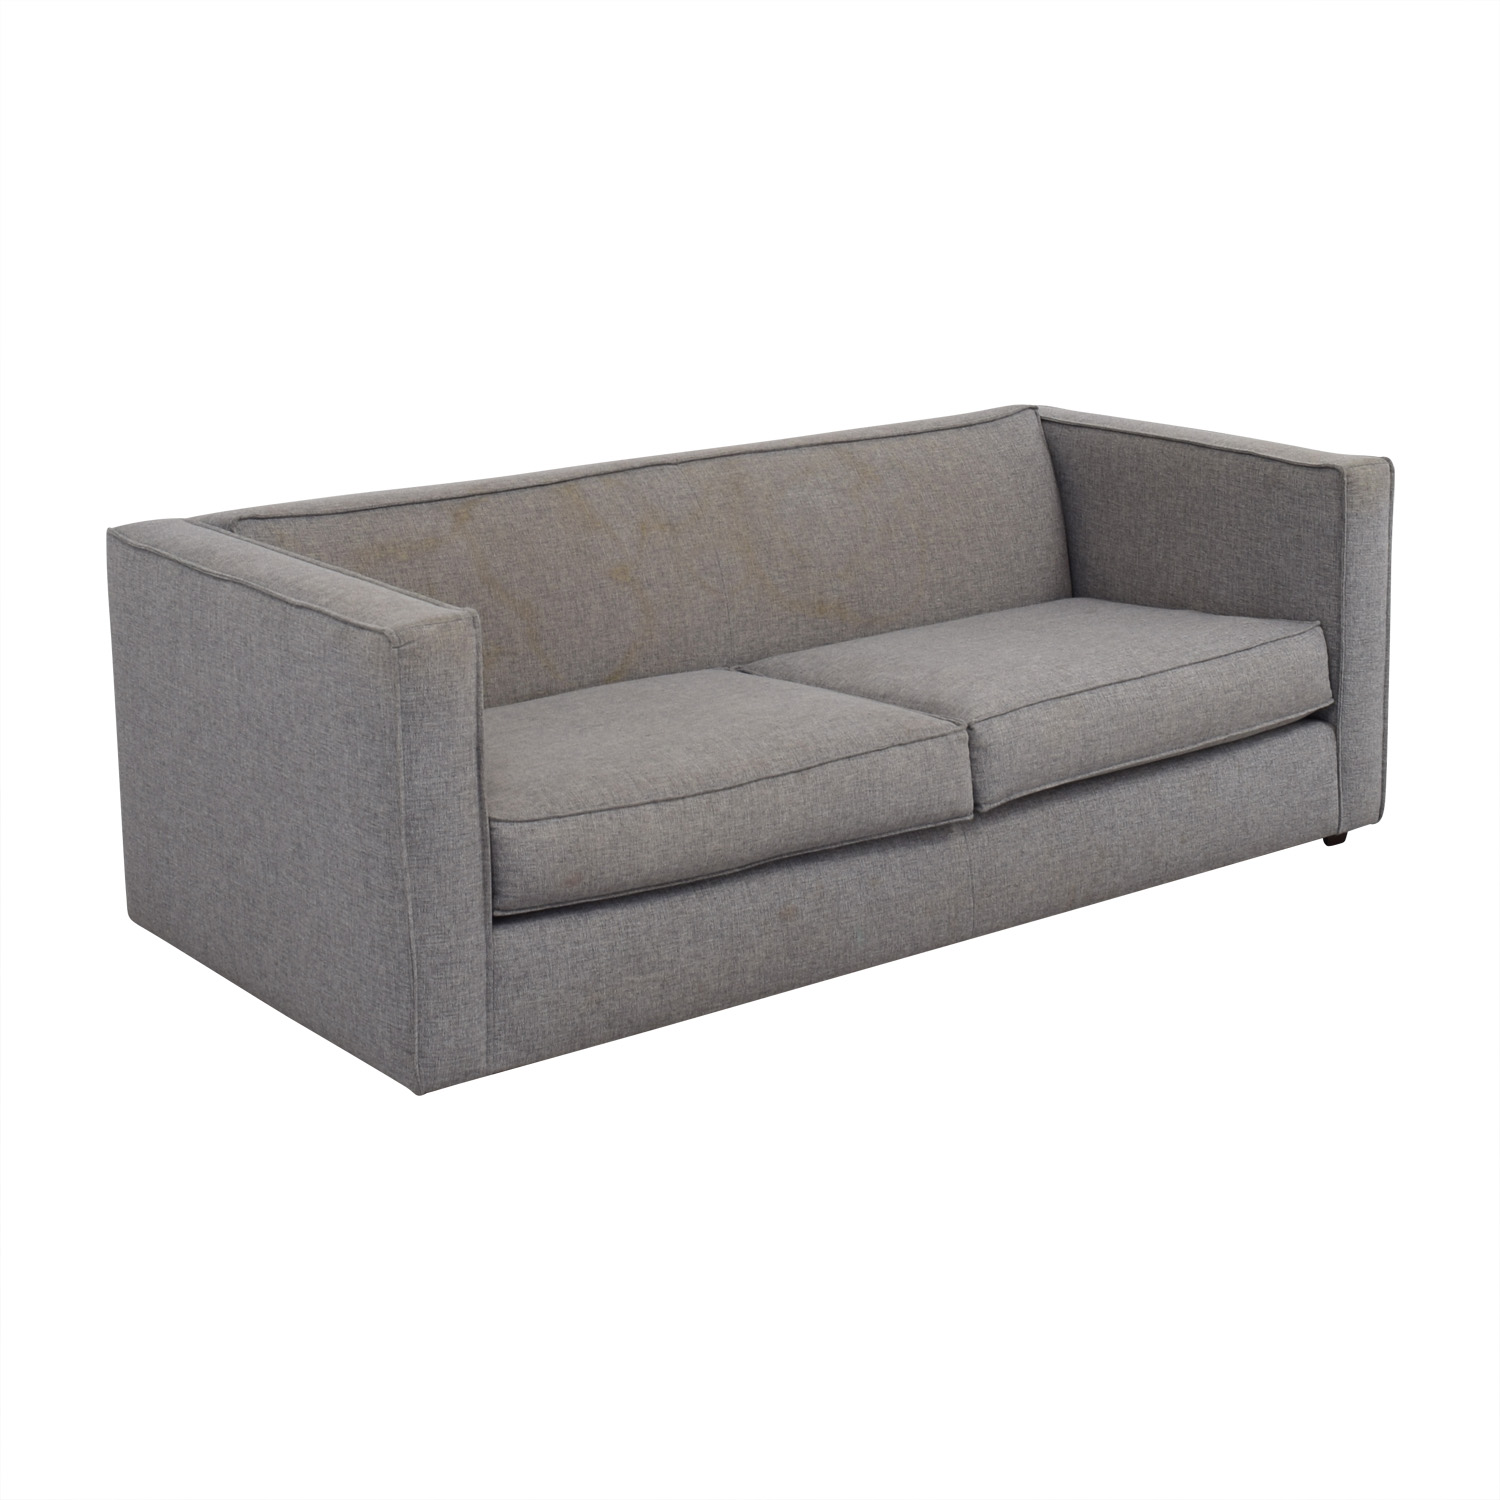 CB2 Club Grey Two-Cushion Sofa sale